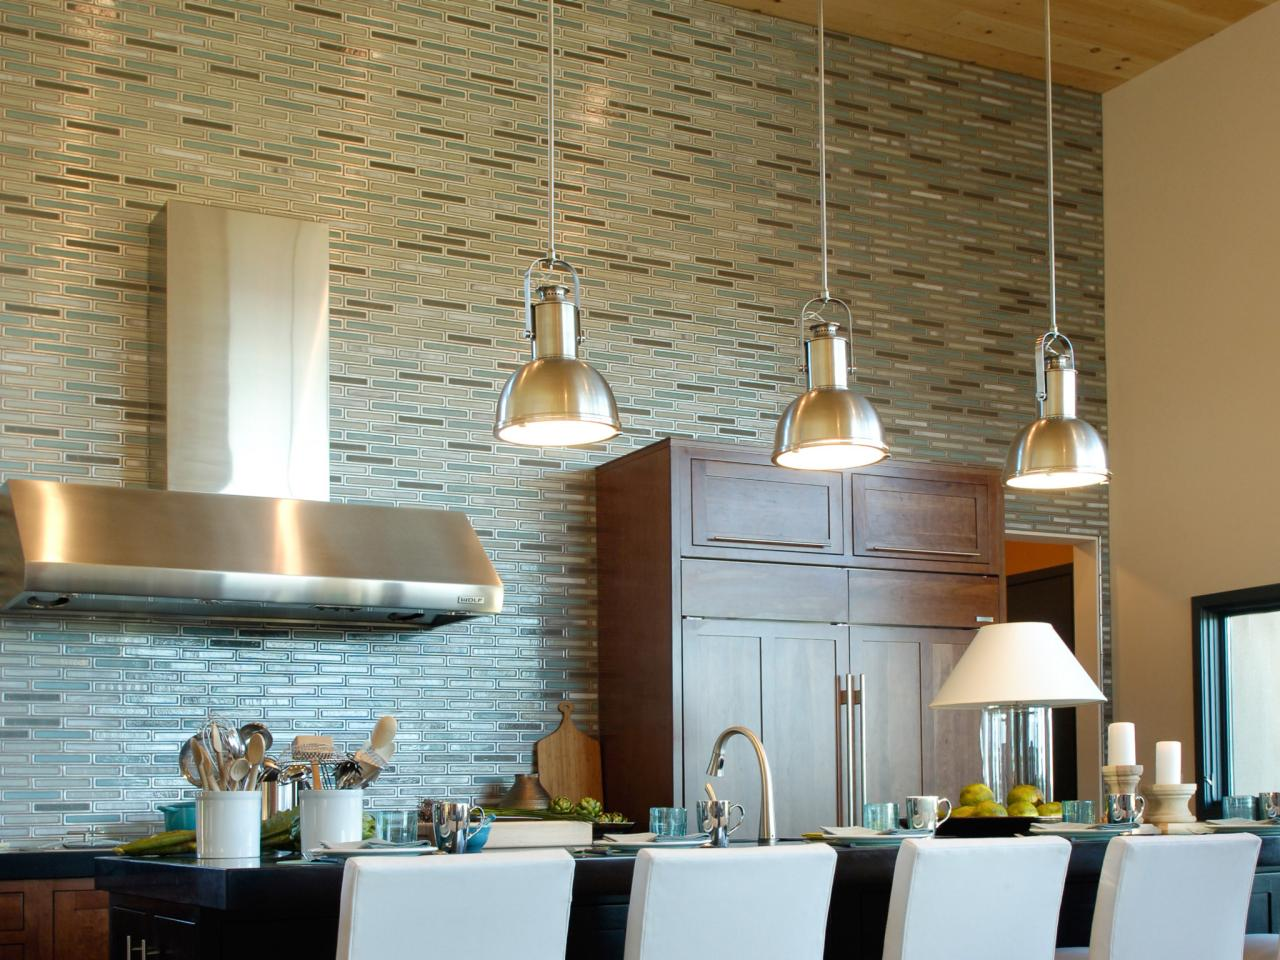 Awesome Design Of The Kitchen Areas With Three Hanging Lamp Added With Grey Backsplash Ideas